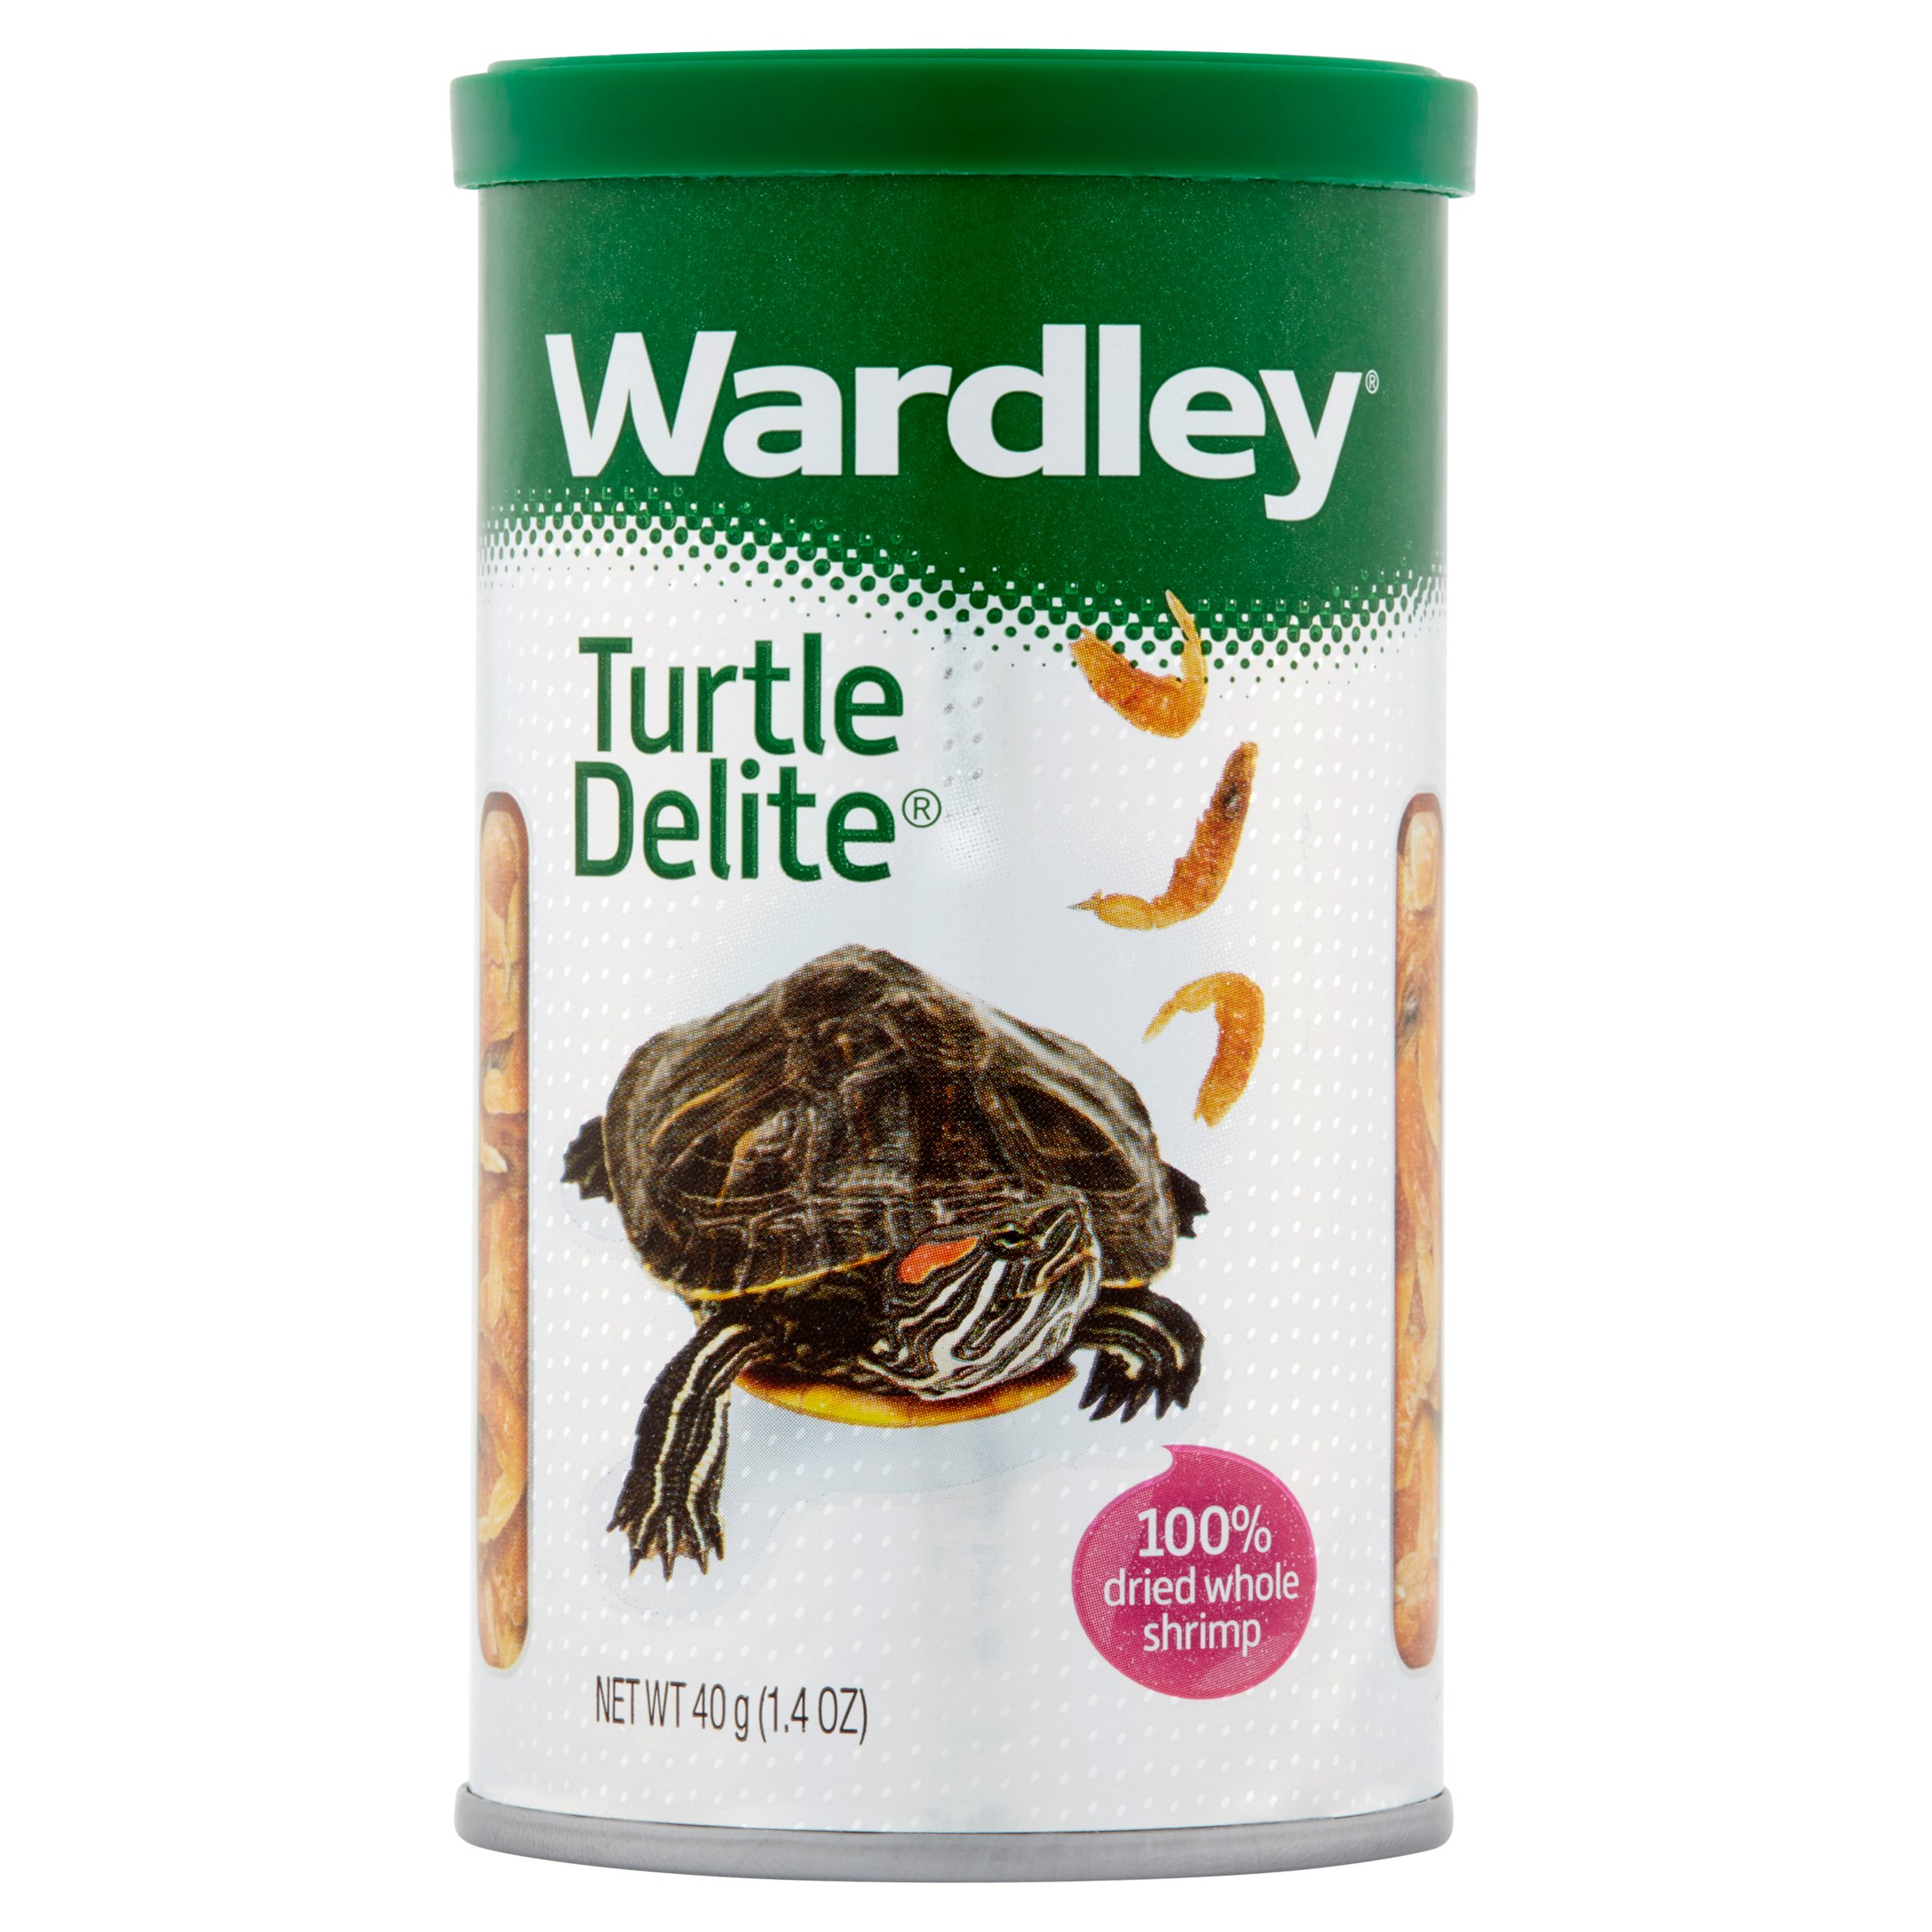 Wardley Turtle Delight Reptile Food, 1.4 oz by The Hartz Mountain Corporation